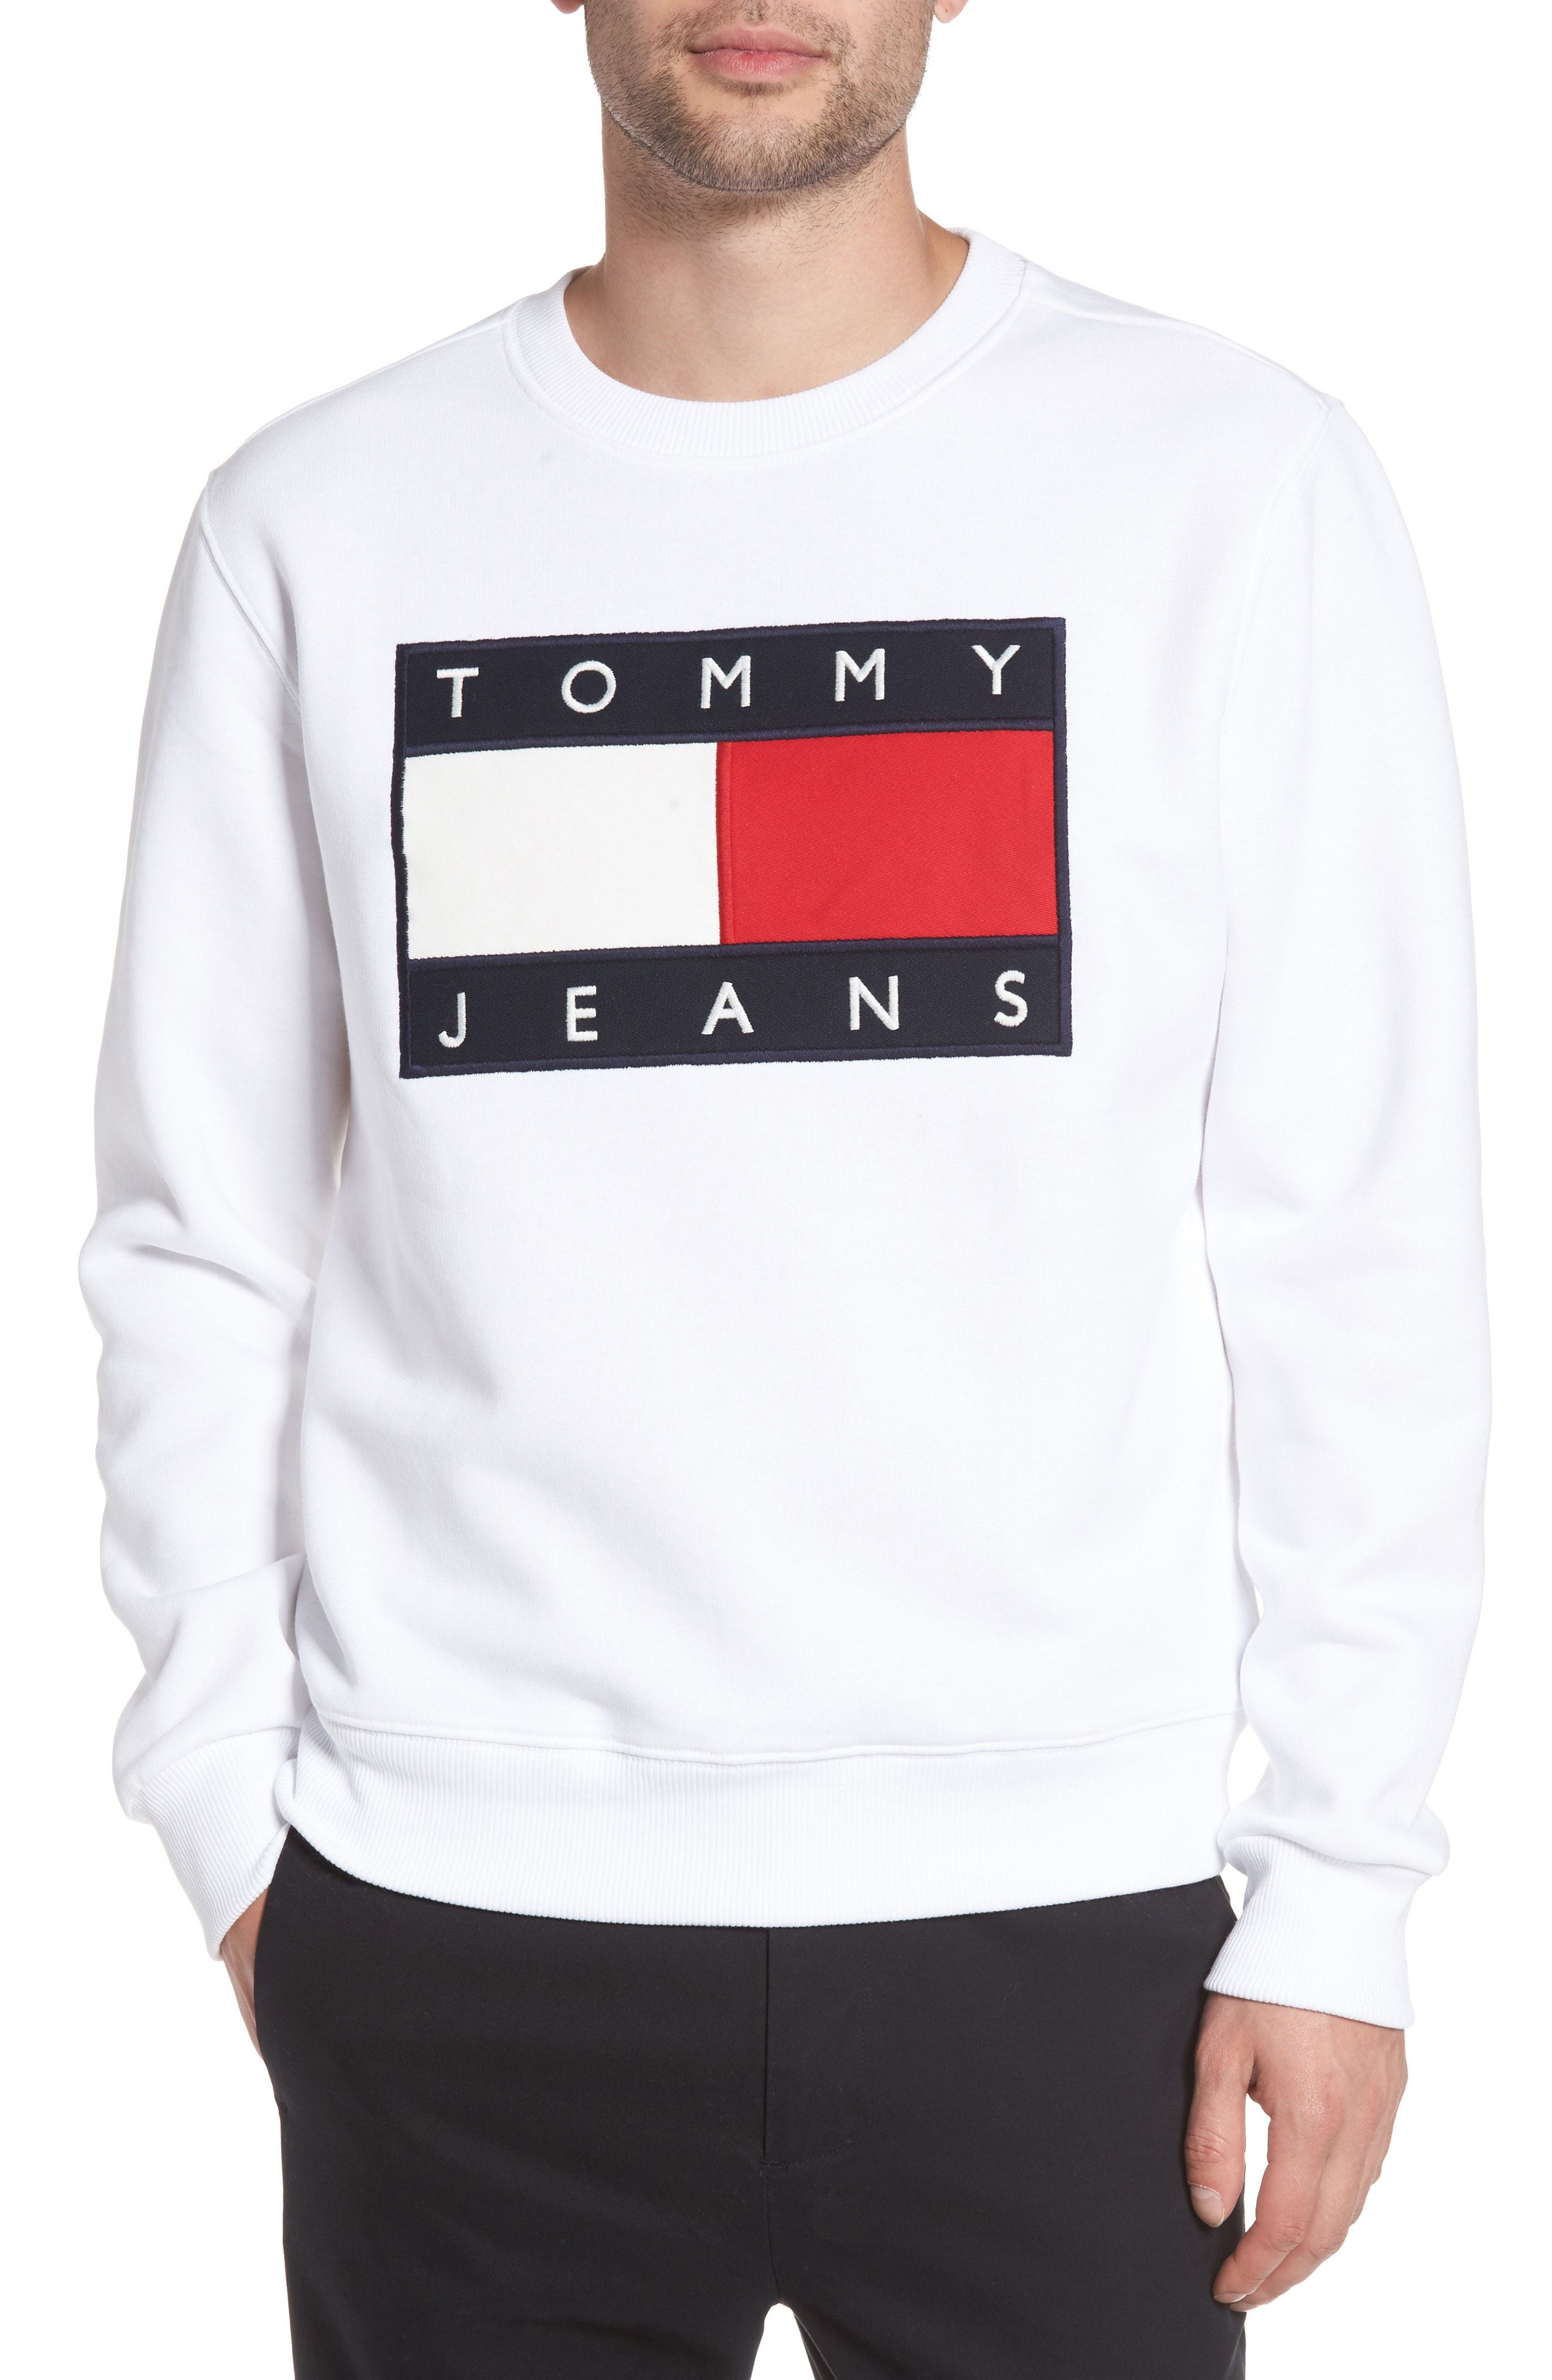 Free Shipping High Quality Mens TJM Corp Logo Hoodie Sweatshirt Tommy Jeans Fake Sale Online Manchester Great Sale Buy Cheap Best Sale Discount Authentic Online jGQTrwxf